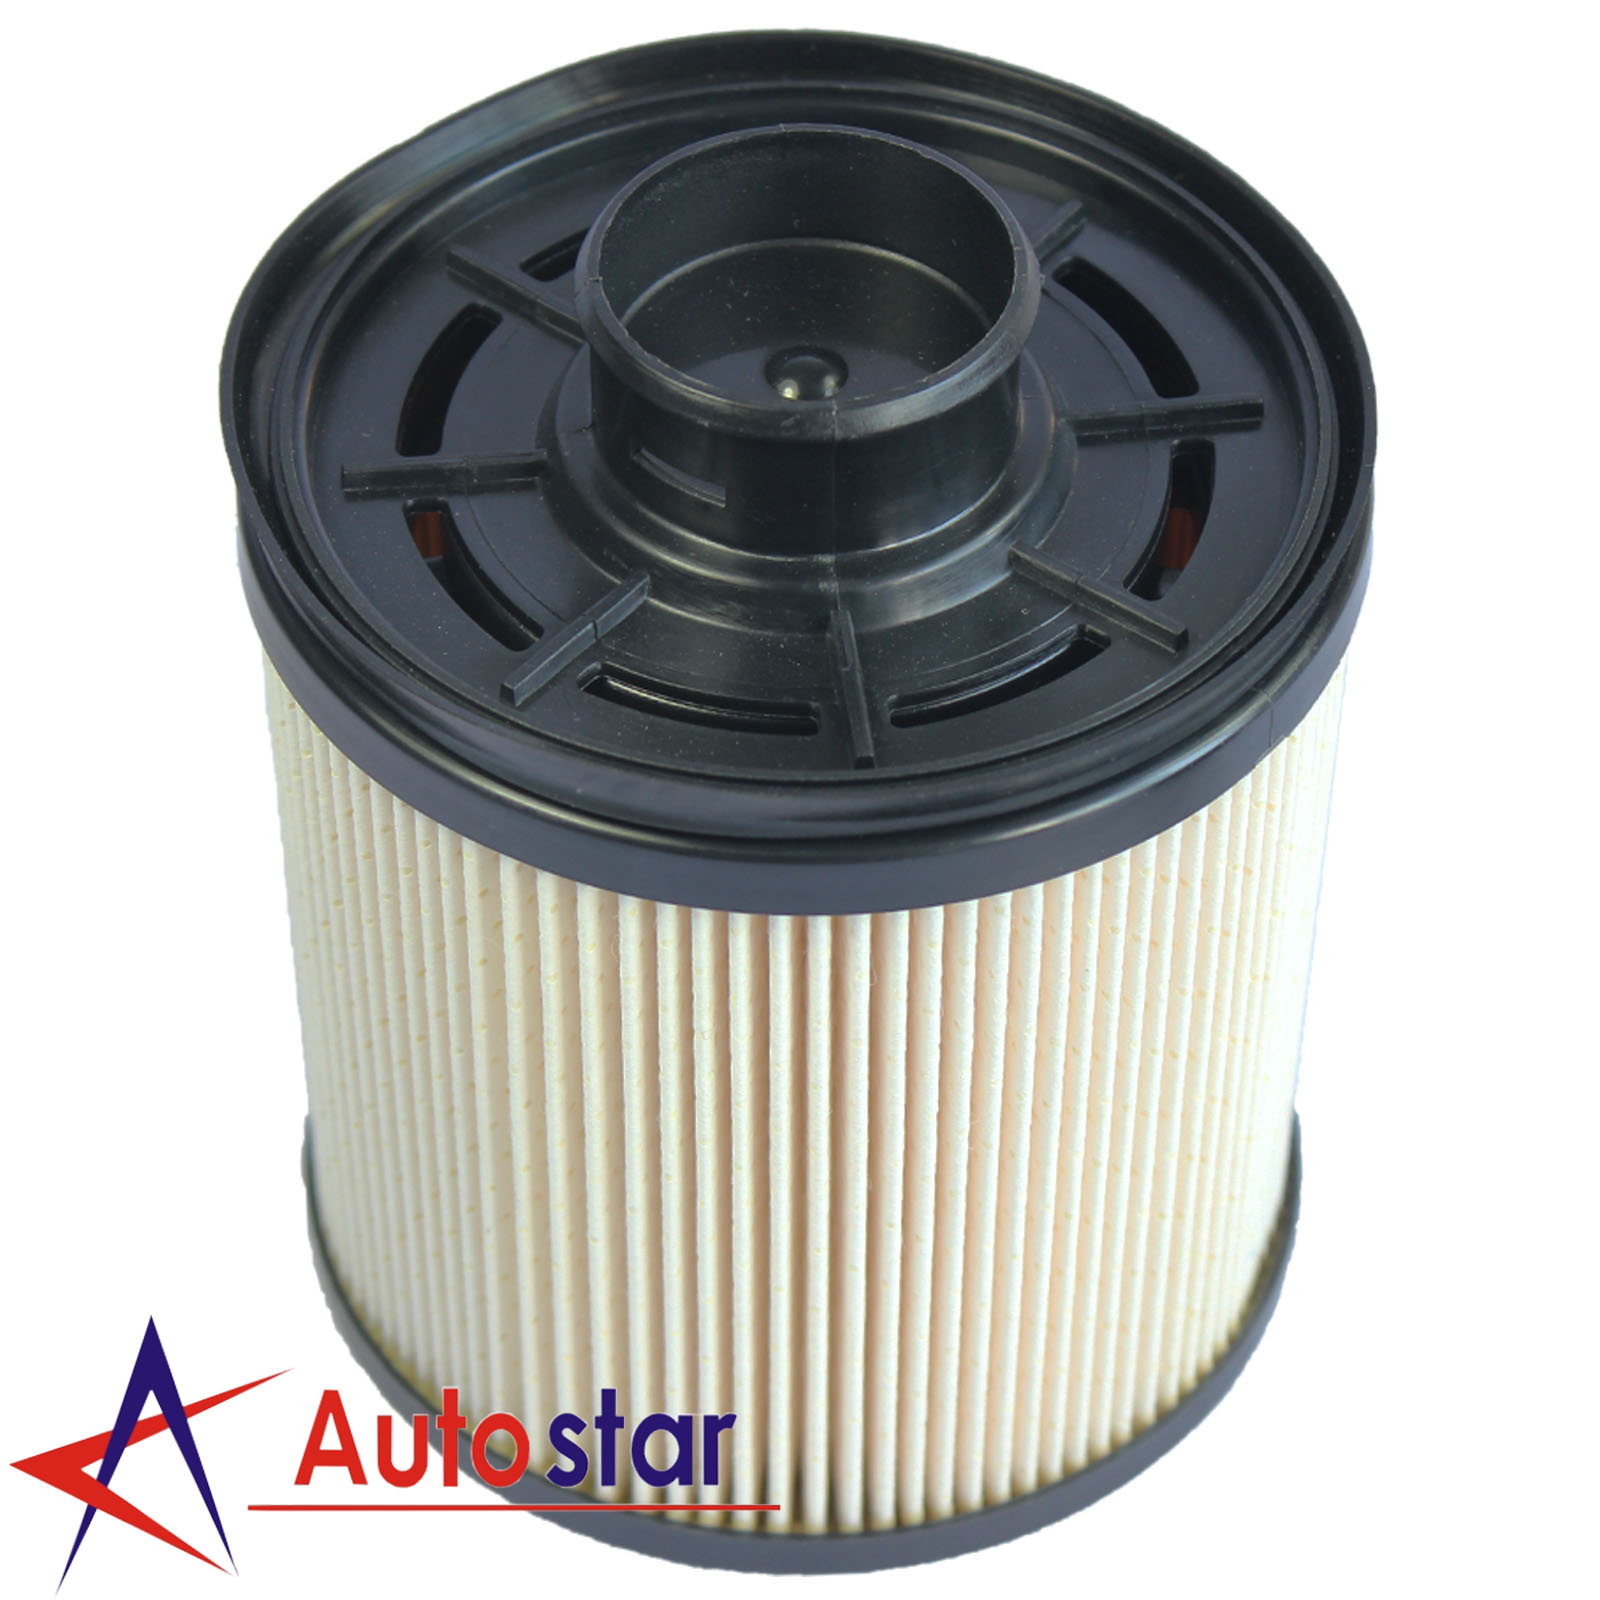 new fd4615 fuel filters for f250 f350 f450 f550 2011-2016 ... 6 0 powerstroke fuel filter #15